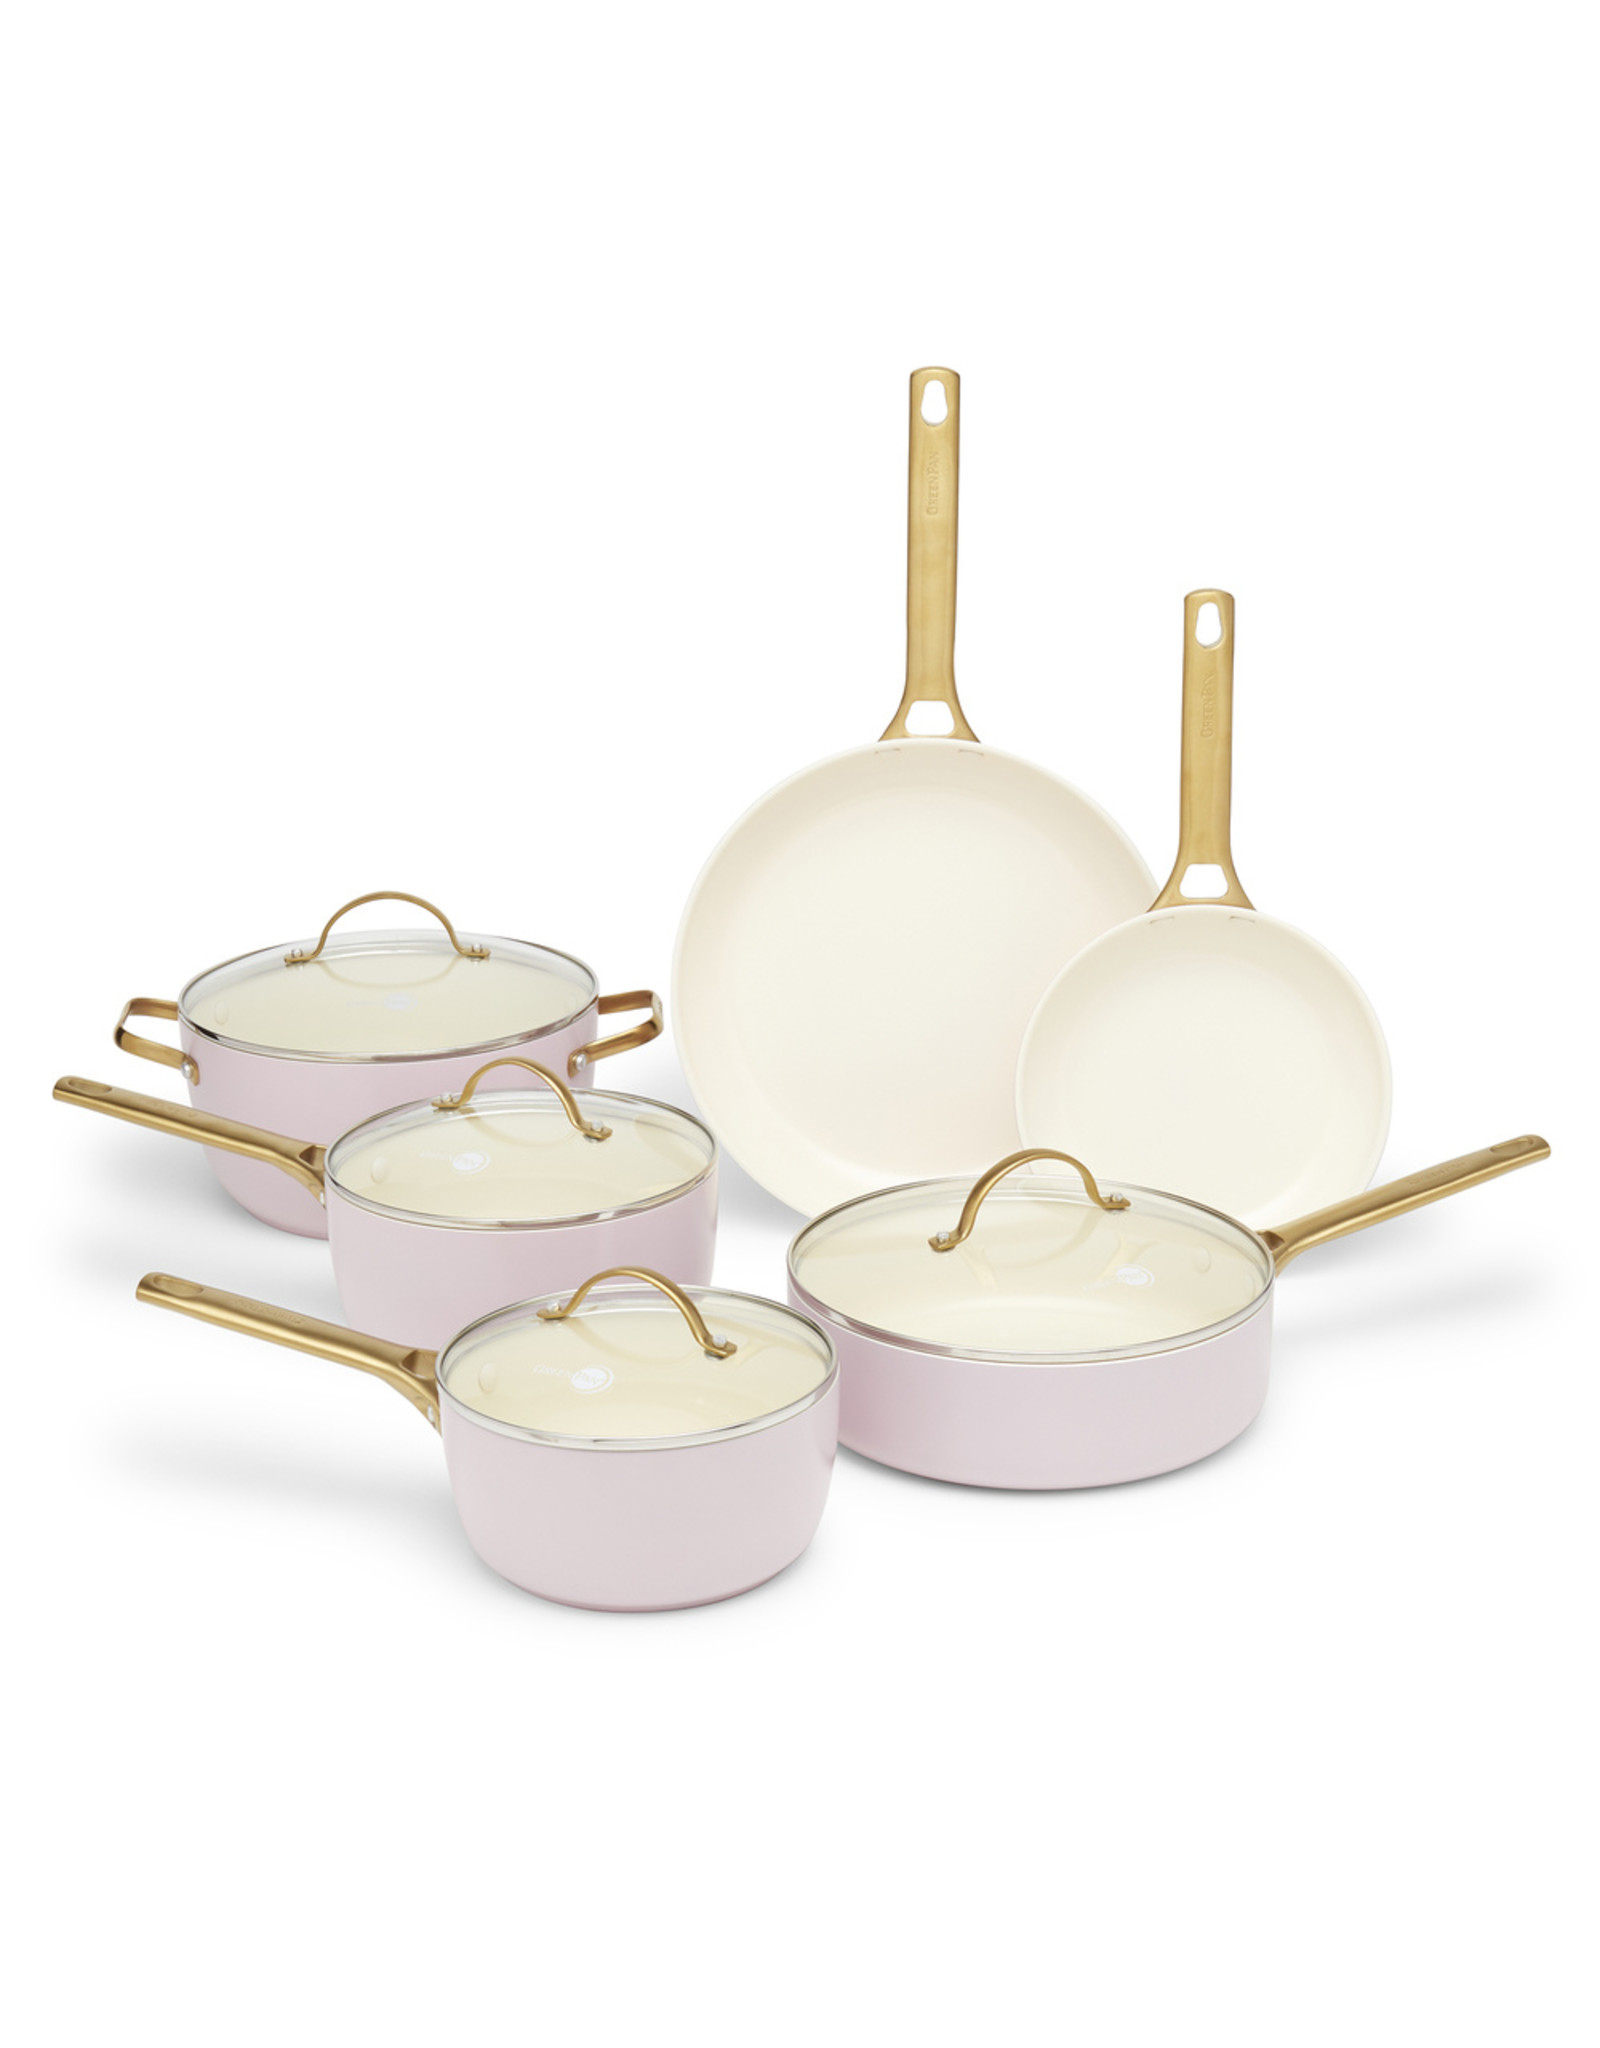 goop x Greenpan goop Exclusive Blush Padova 10-Piece Set (Color: Blush)